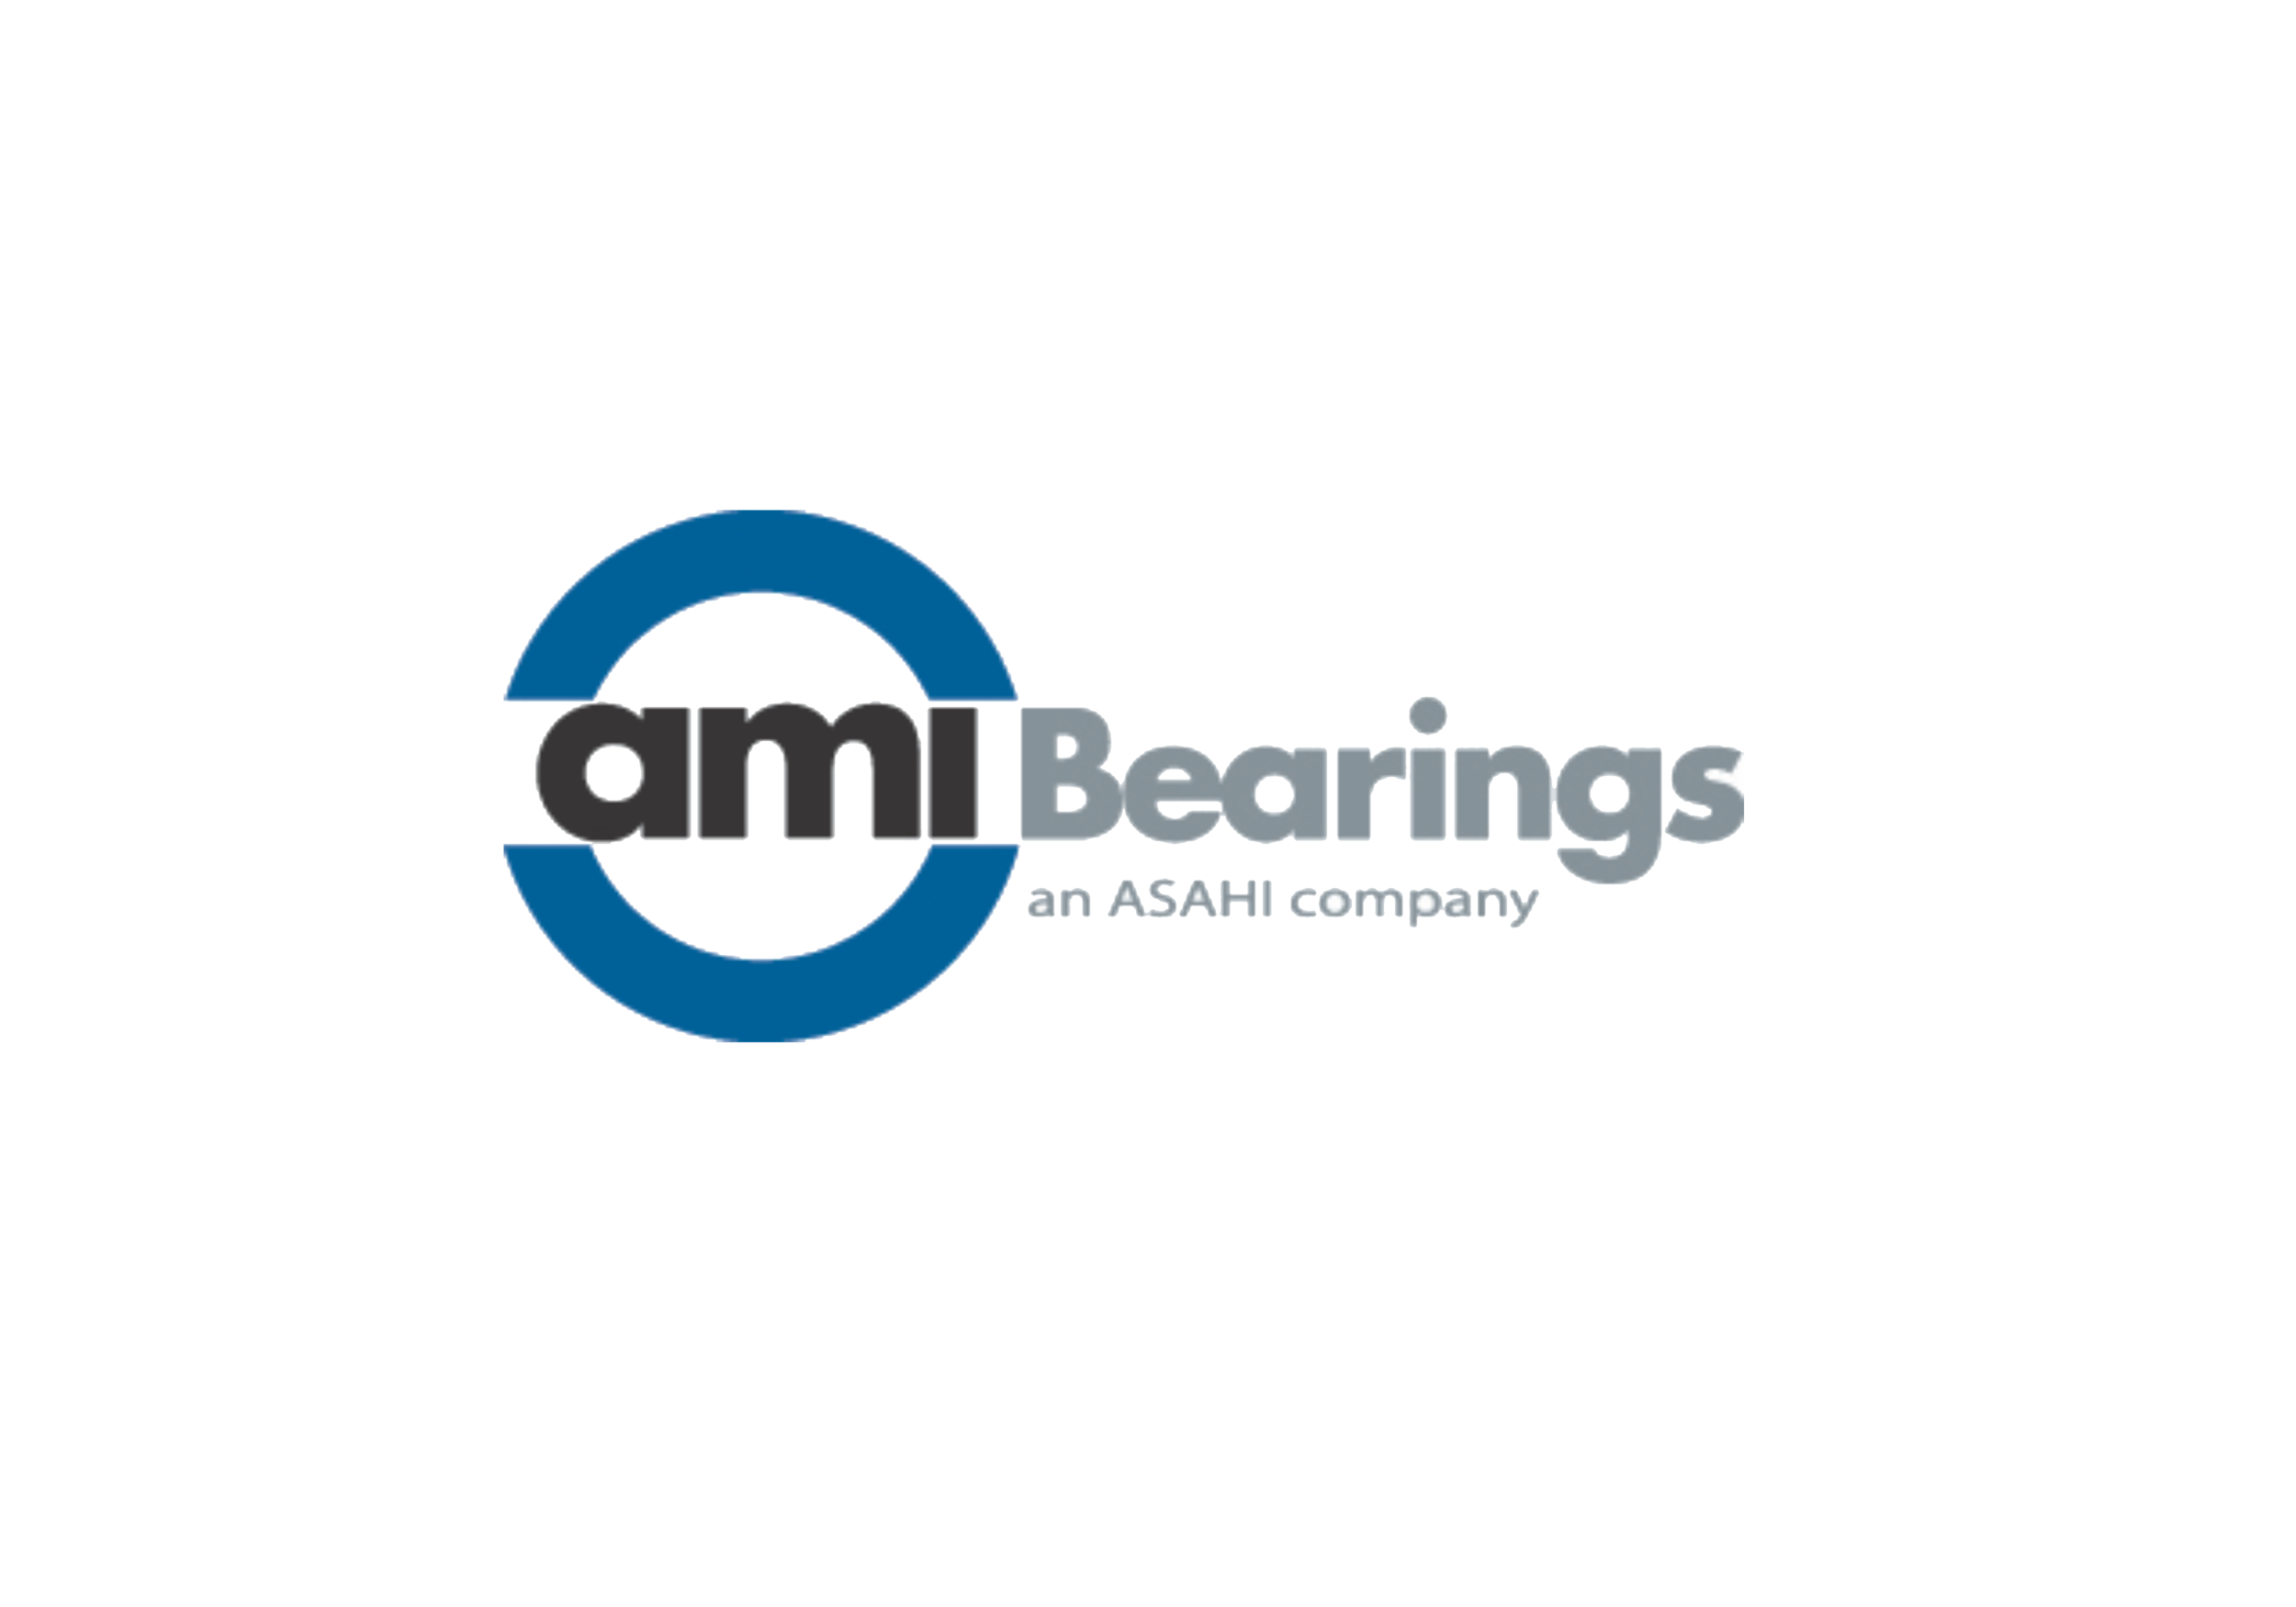 AMI Bearings - AMI features one of the broadest combinations of mounted ball bearings. AMI offers both standard and custom mounted bearings - specializing in the packing and food industries.Bearings: mounted bearing units, mounting bearing inserts, corrosion protection bearing units, corrosion protection inserts, free spinning bearing inserts, high temperature bearing inserts and units.Reasons to choose AMI: high quality Japenese import bearings, reliable customer service, large inventory with fast delivery, and large variety of products.